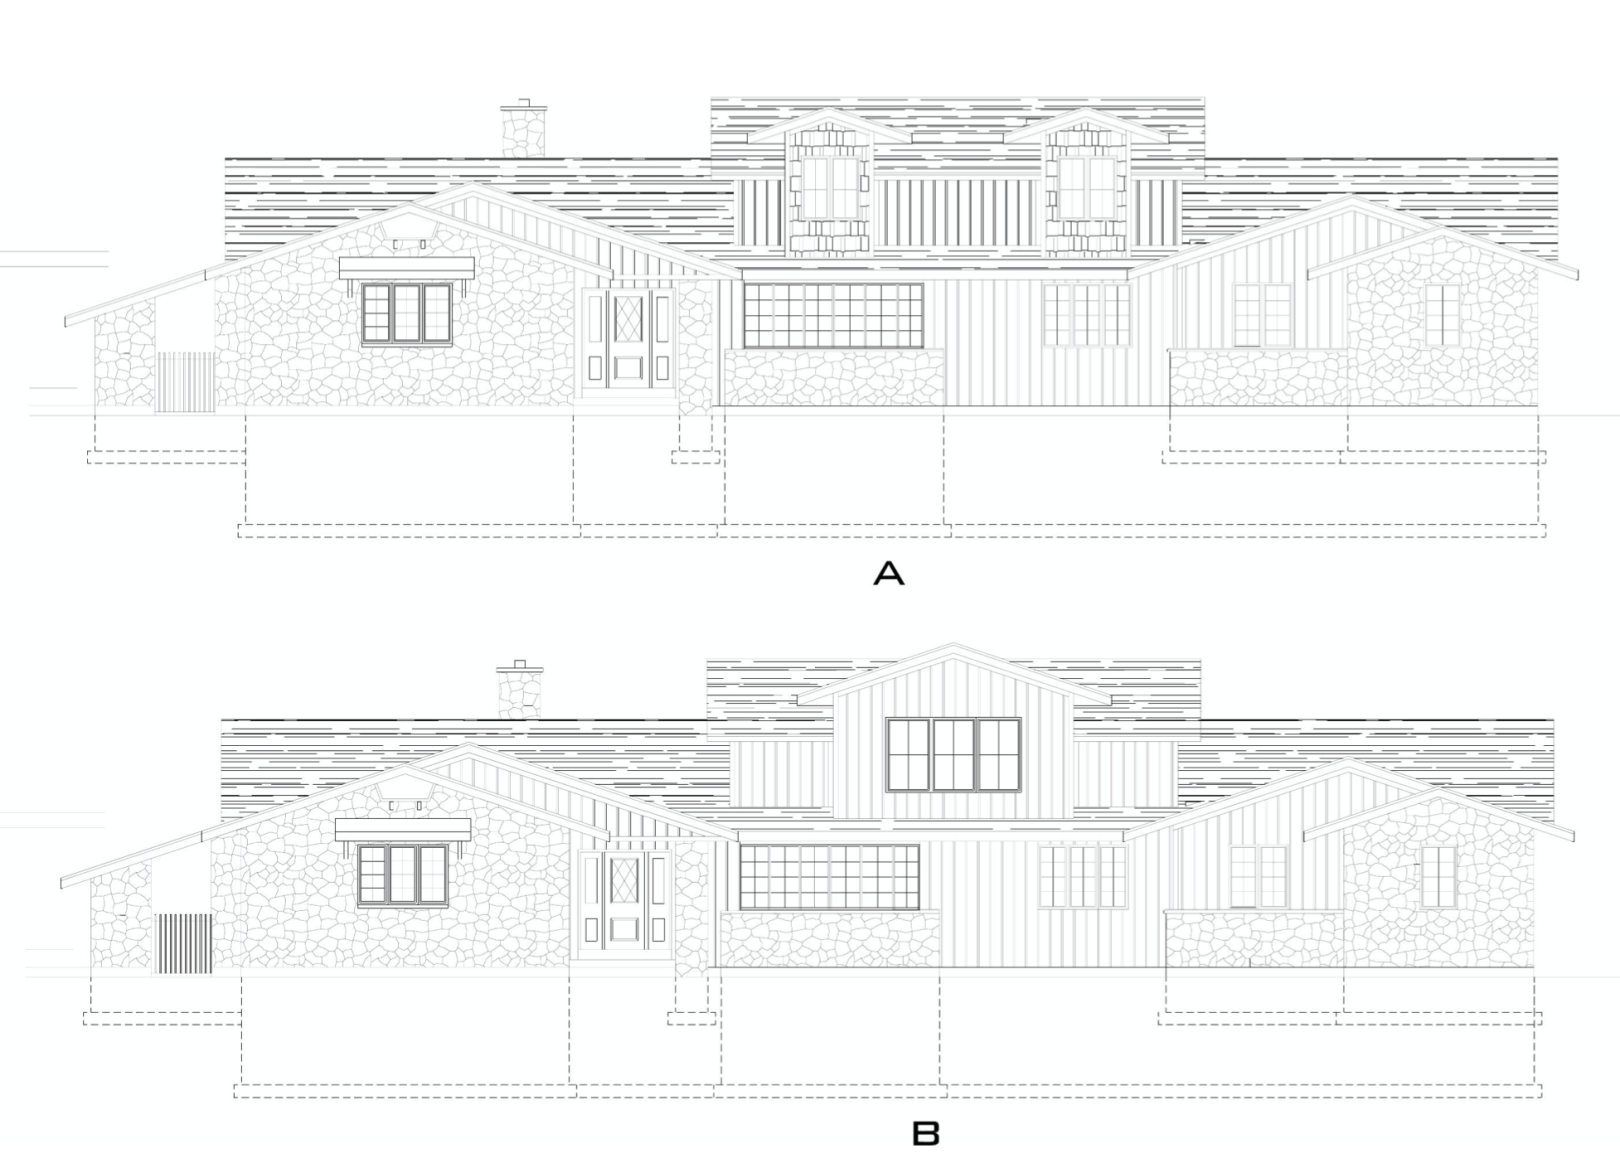 Exterior Ideas for our Ranch Home- Adding Second Floor